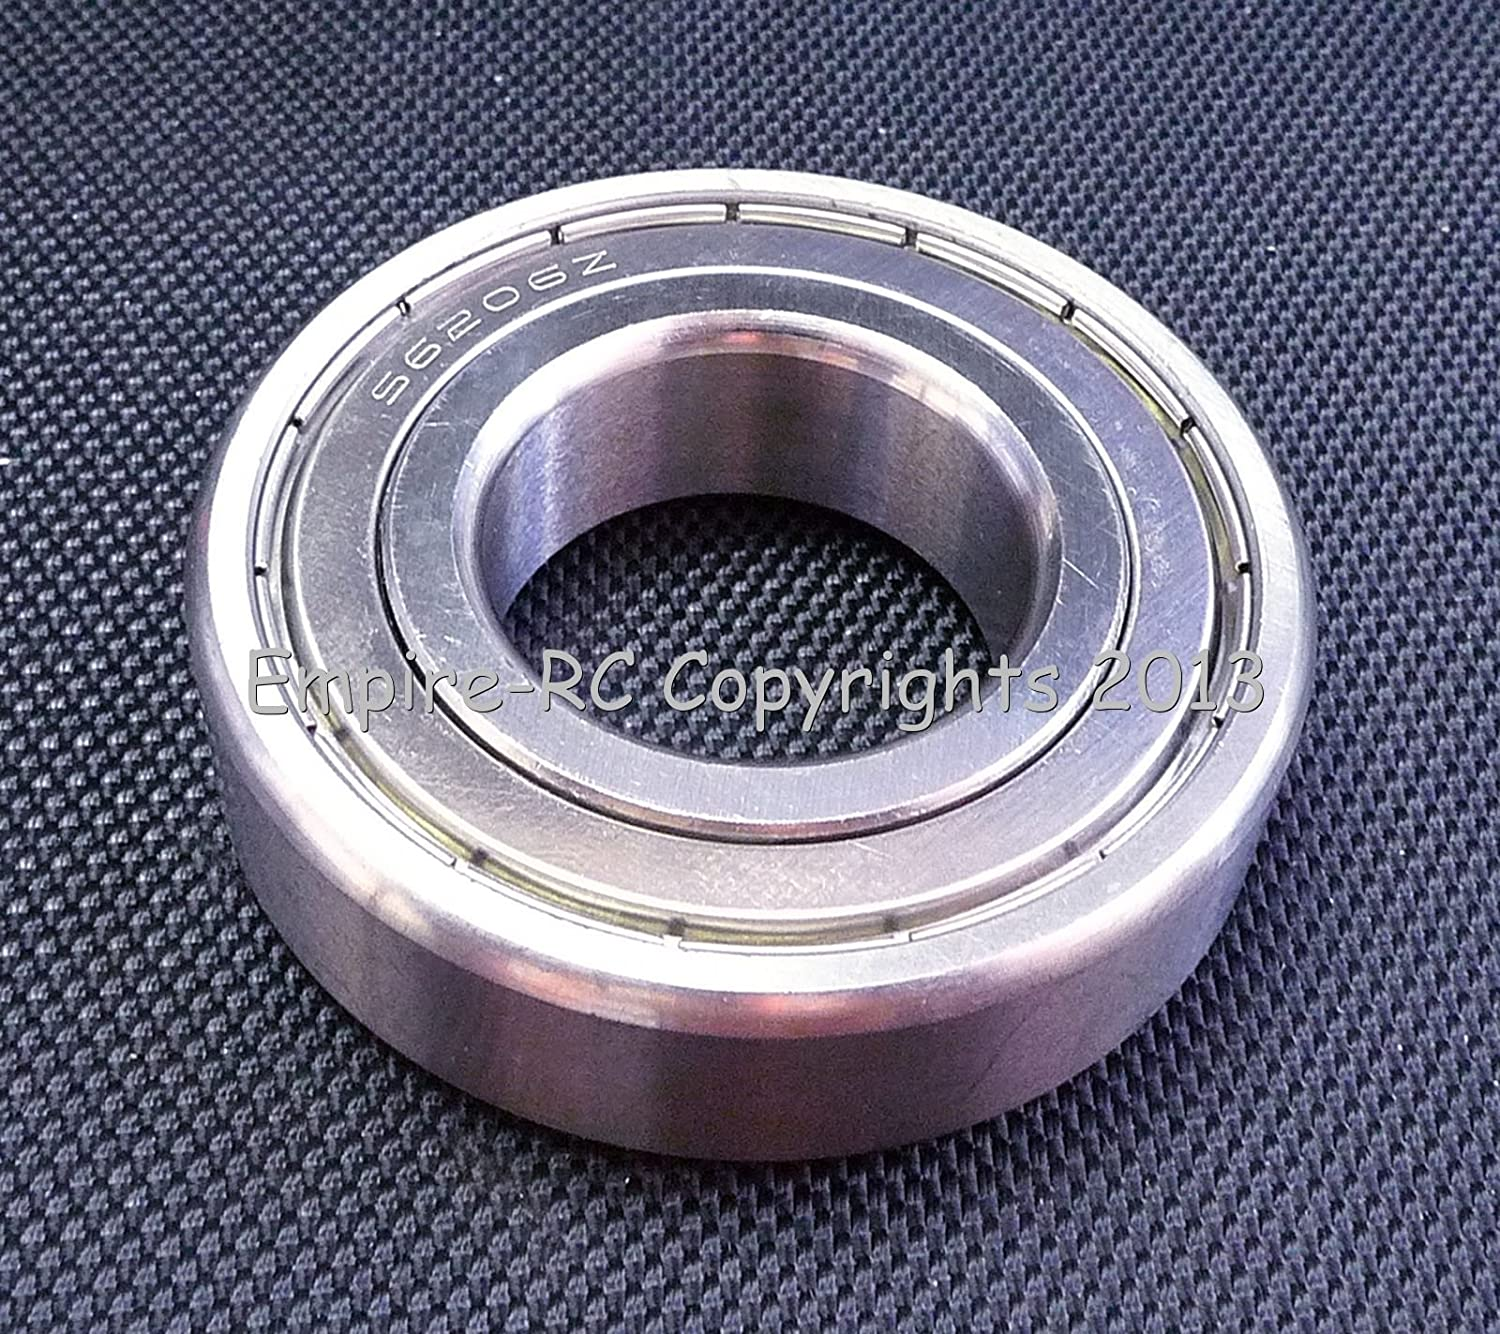 1 PCS 440c Stainless Steel Shielded Ball Bearing (S6205ZZ 6205ZZ) (25x52x15 mm) /item# G4W8B-48Q41604